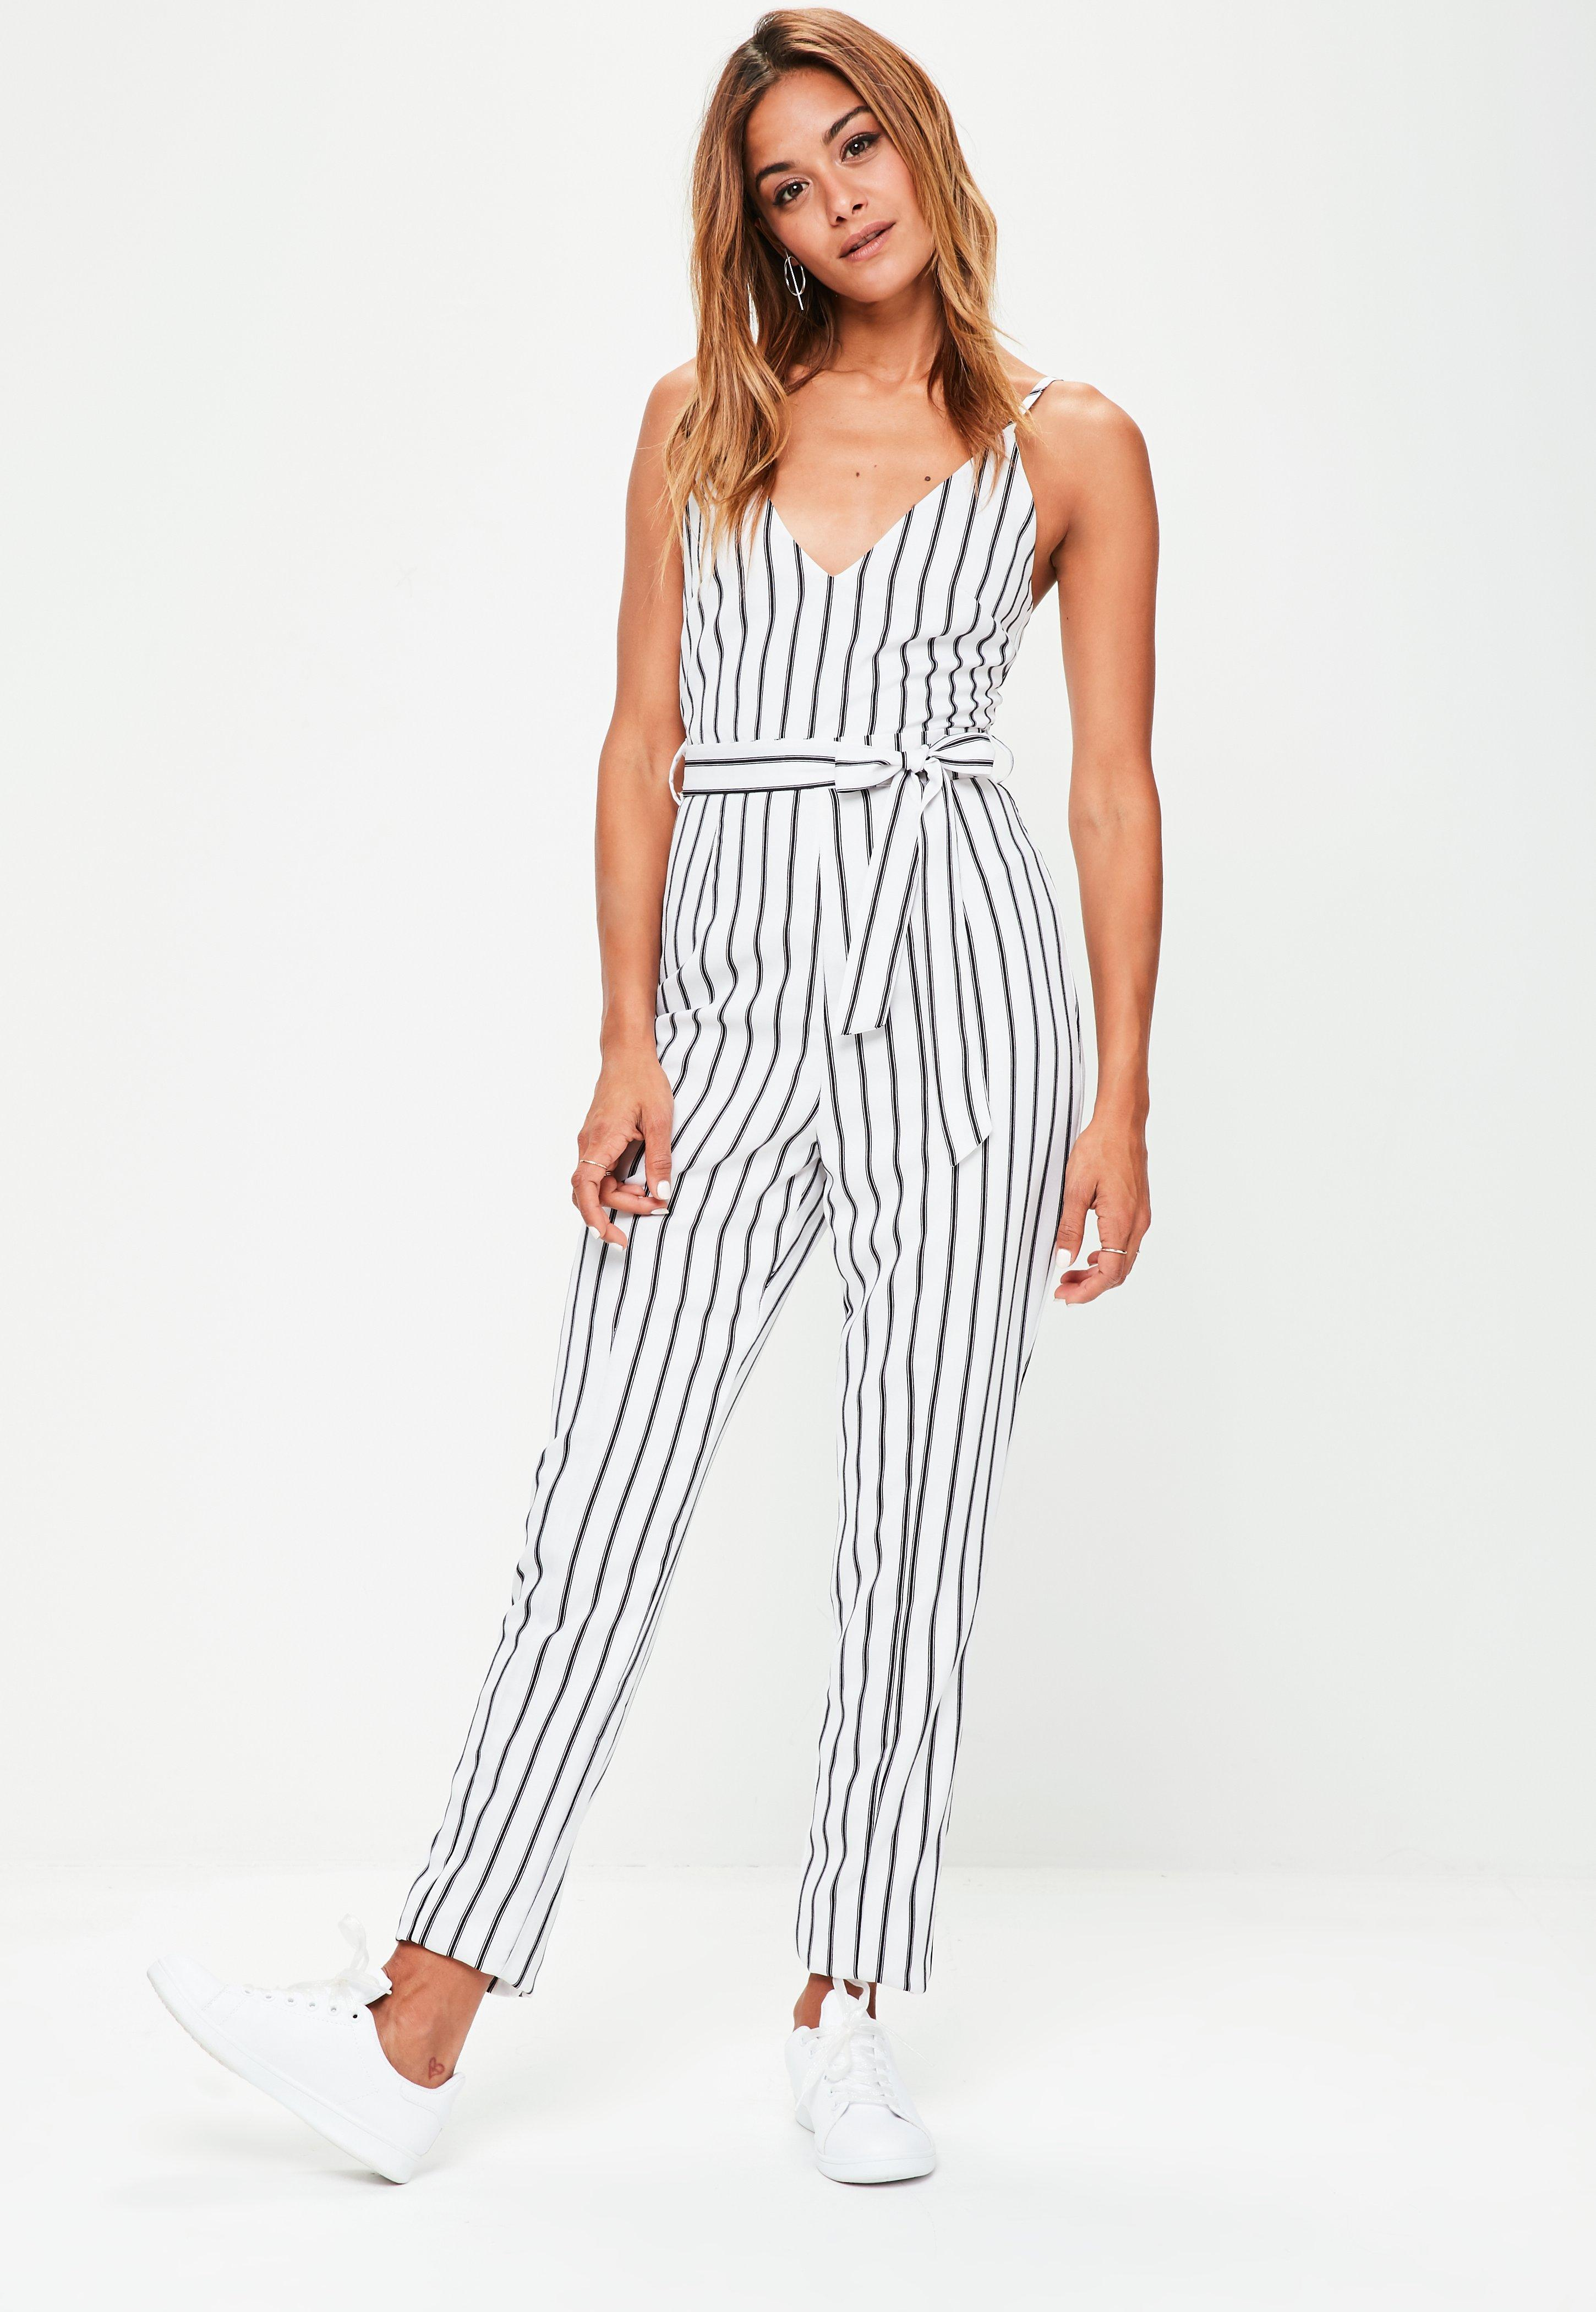 000b1eb18db Lyst - Missguided Tall White Striped Cami Jumpsuit in White